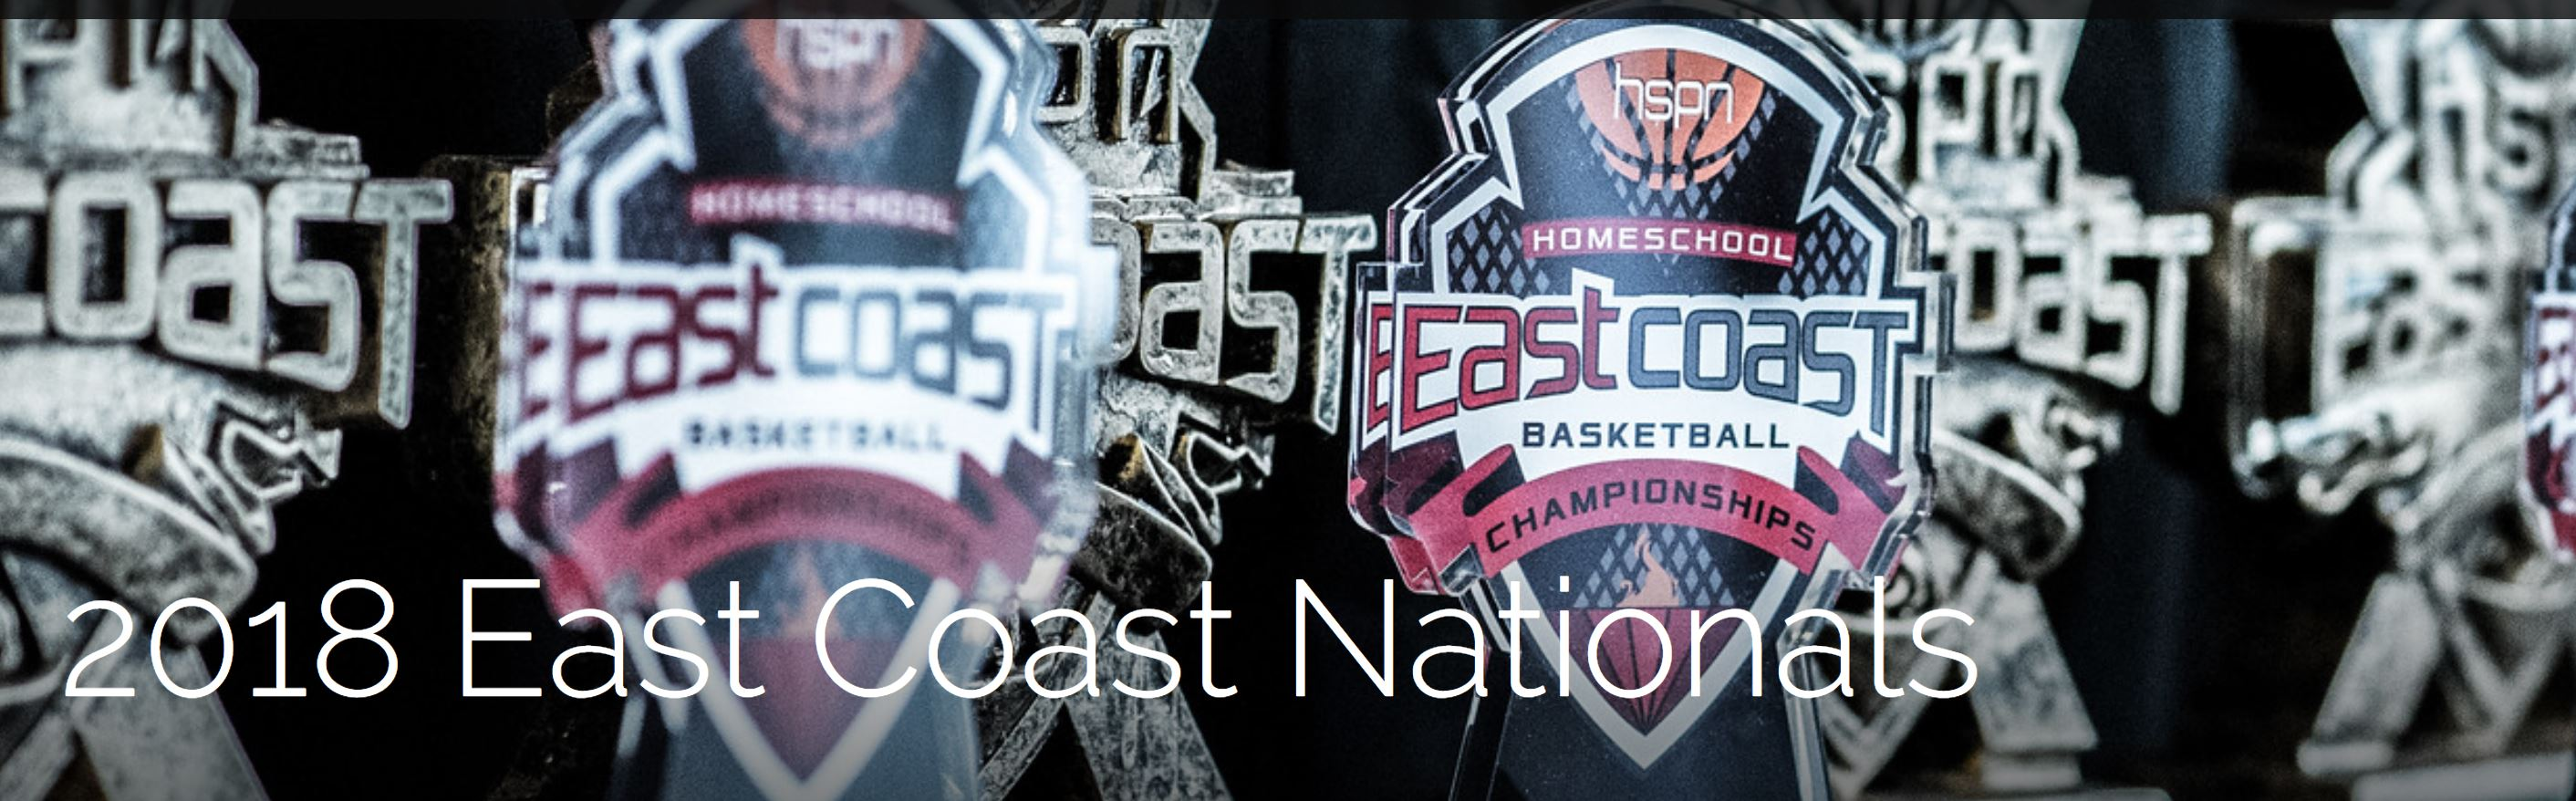 The official website of the 2018 East Coast Homeschool Basketball Championships